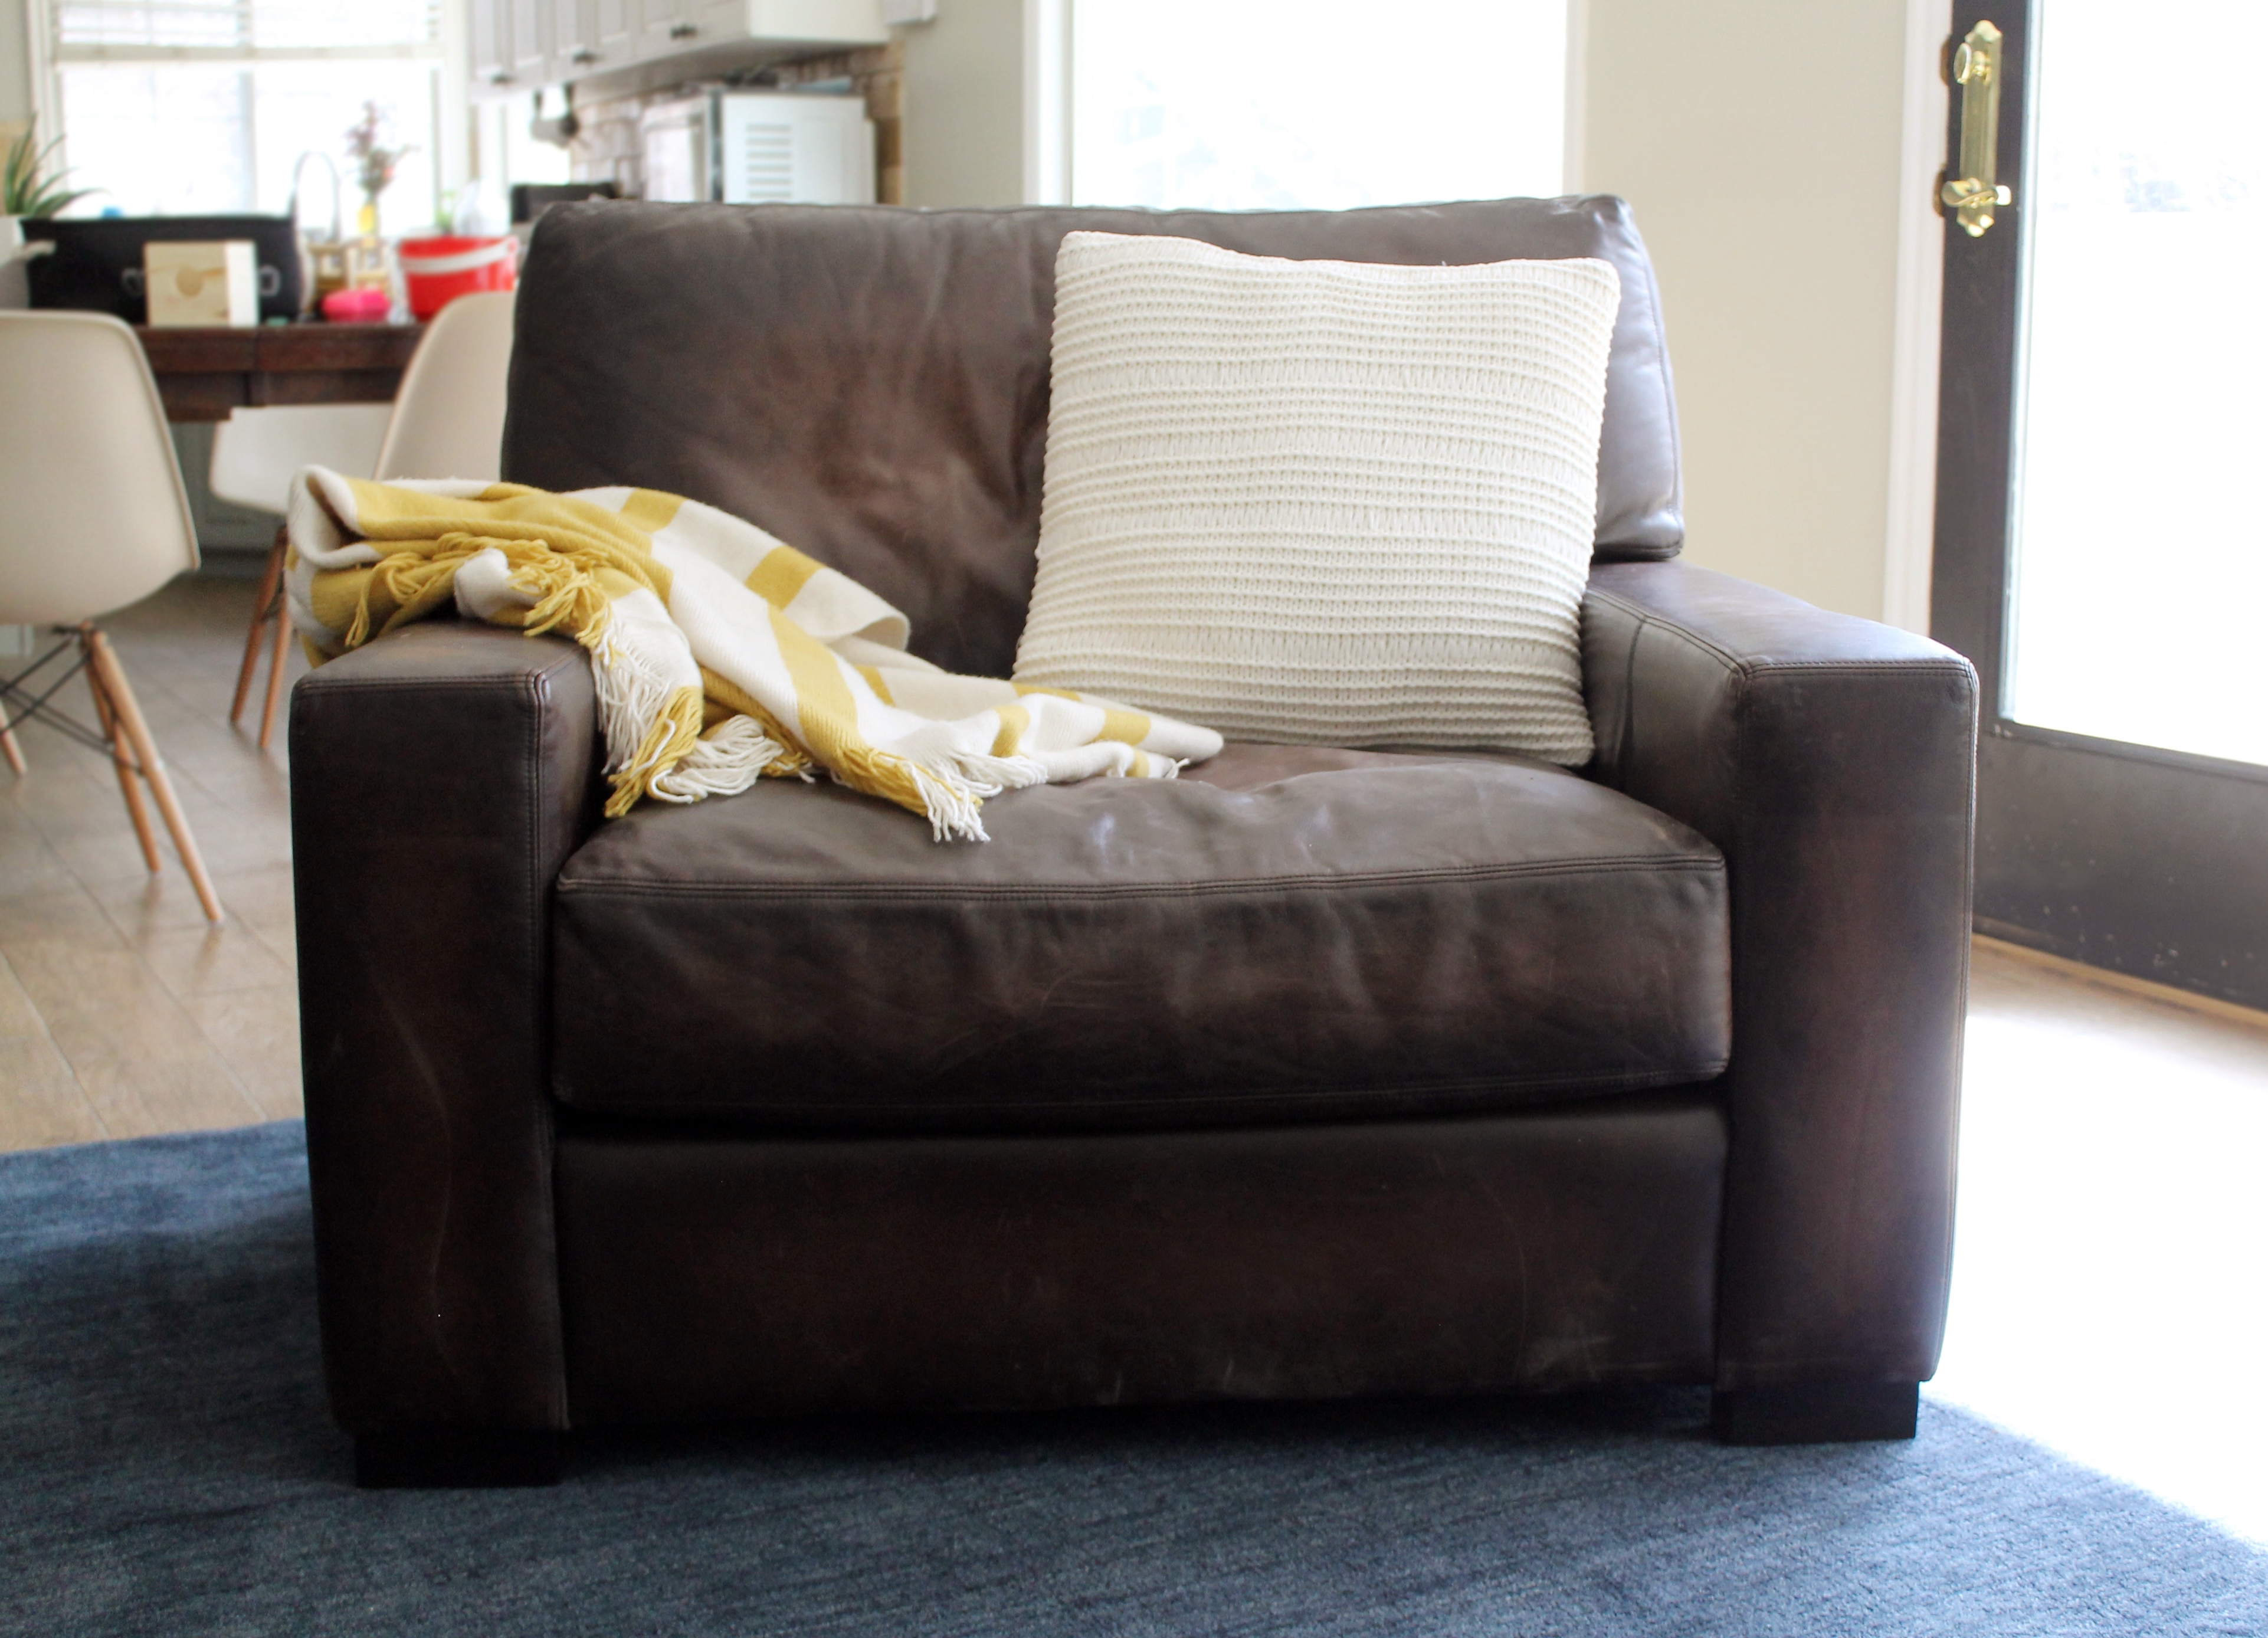 Pottery Barn Sectional Sofas Throughout Trendy Pottery Barn Turner Sofa Knock Off (View 10 of 15)